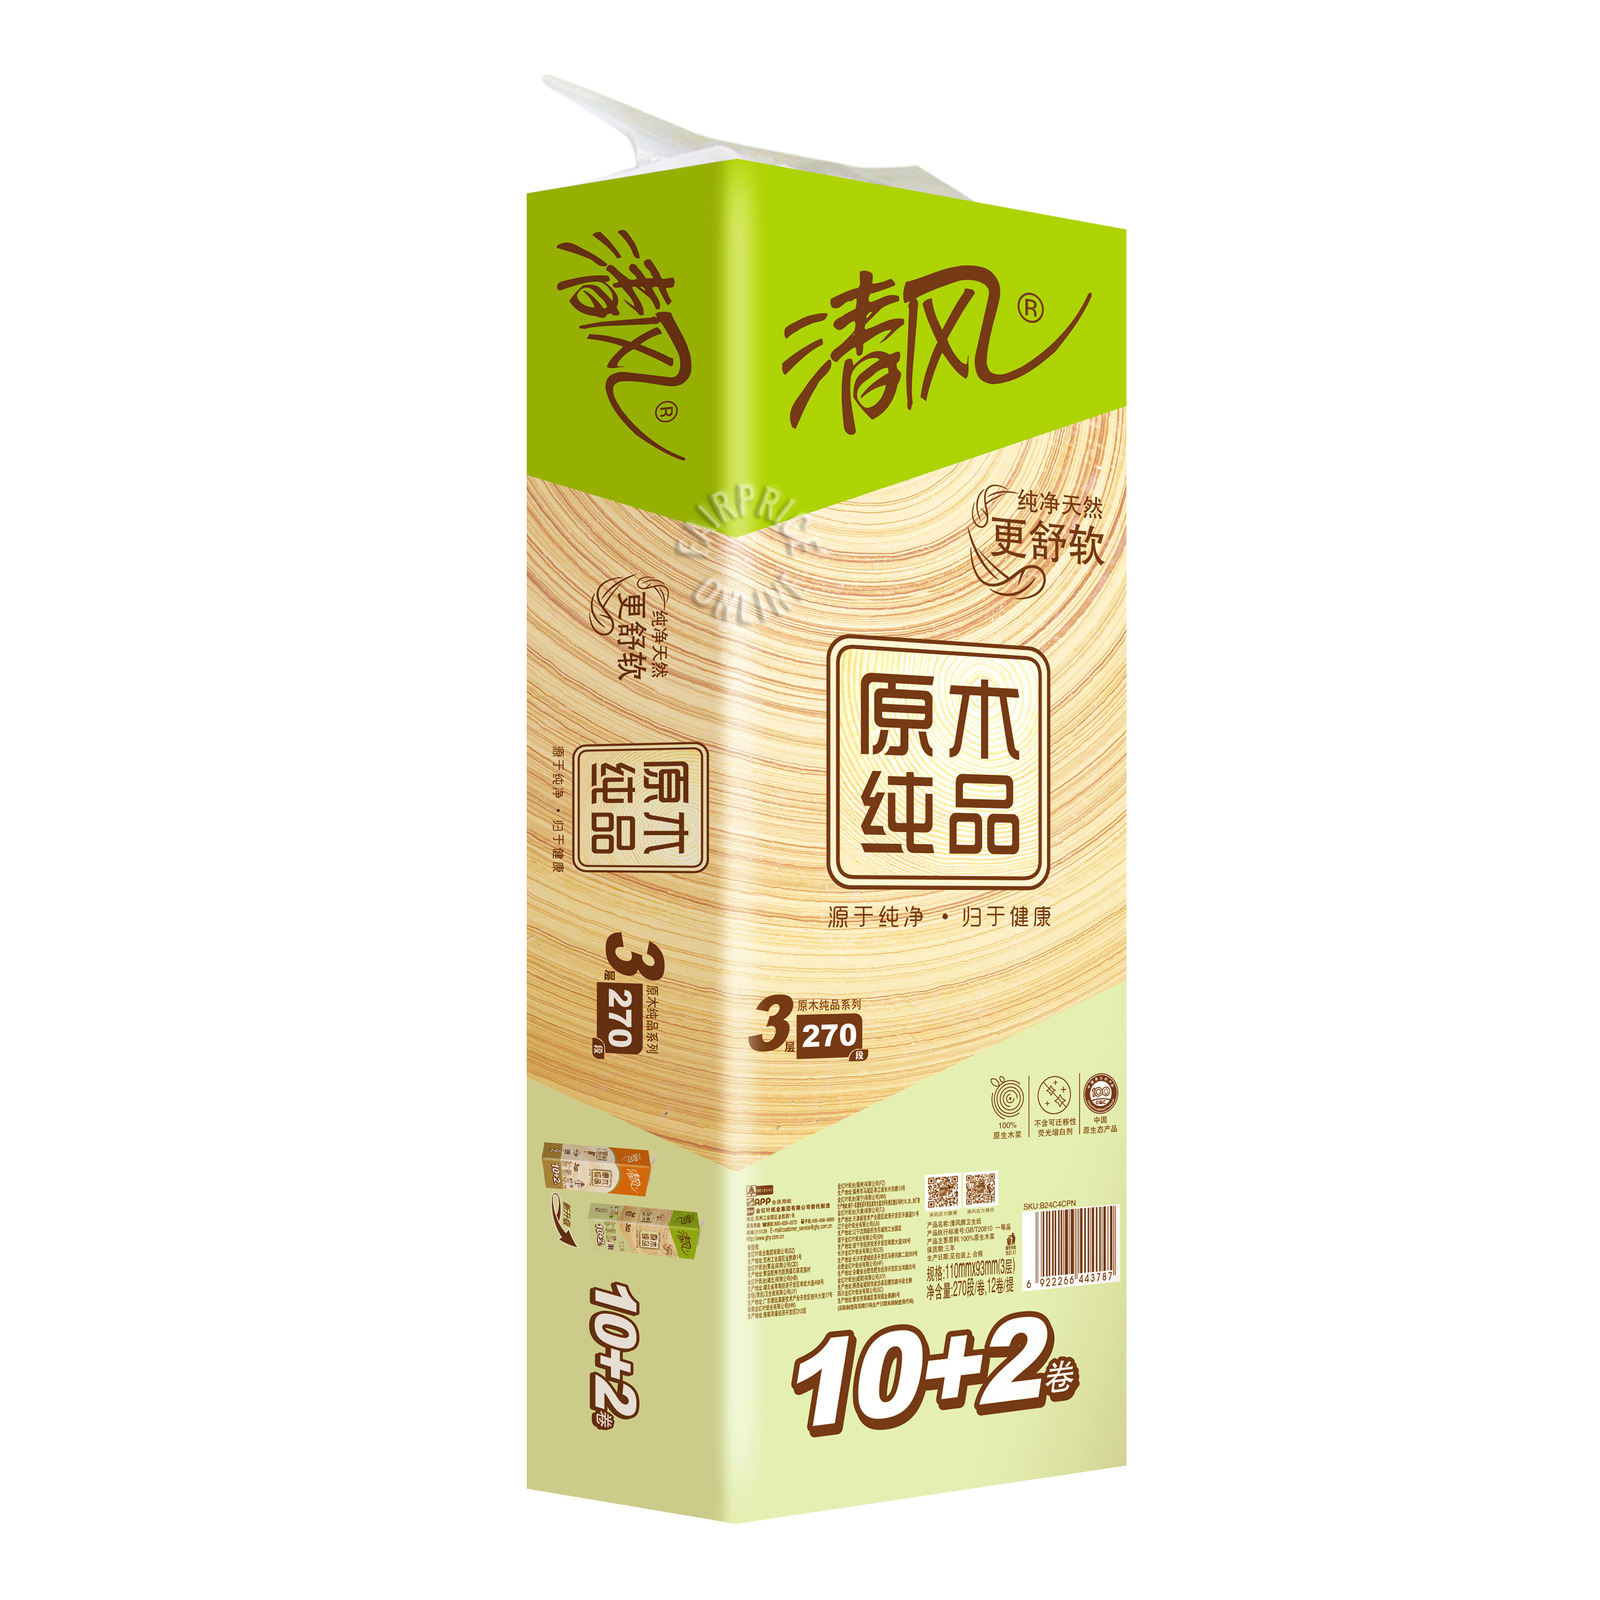 Qing Feng Toilet Roll - 3 Ply